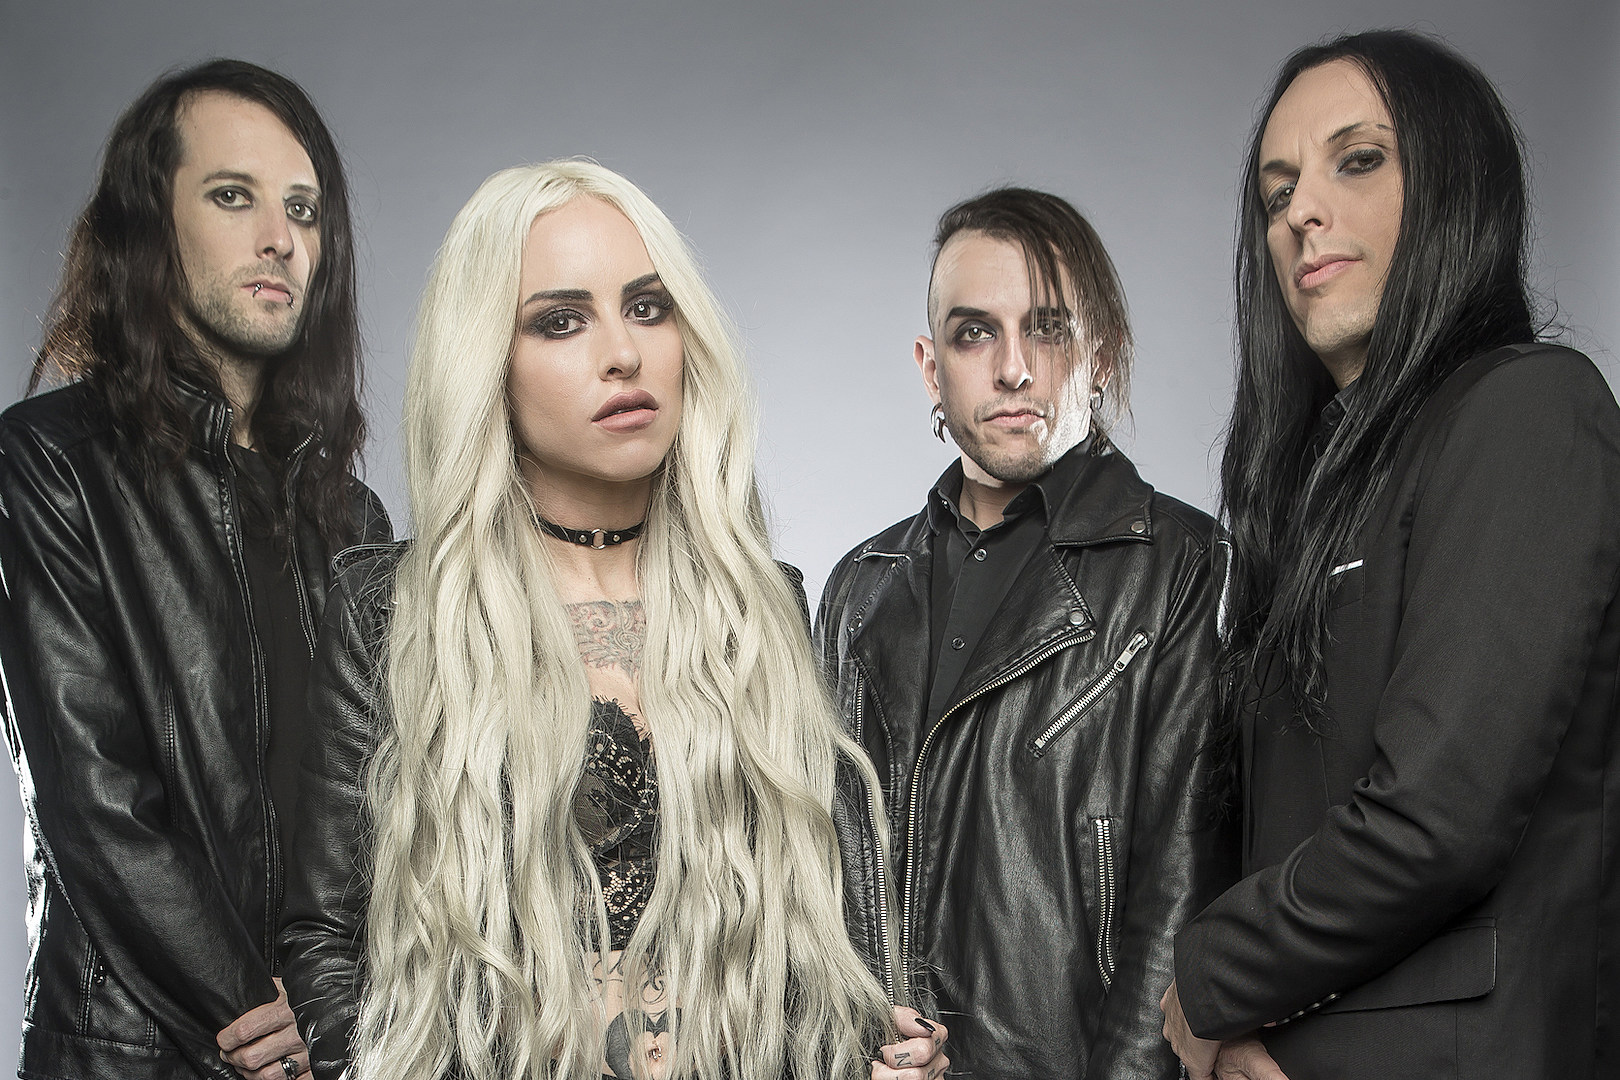 Stitched Up Heart to Put Out New Song Each Month Until Album Release